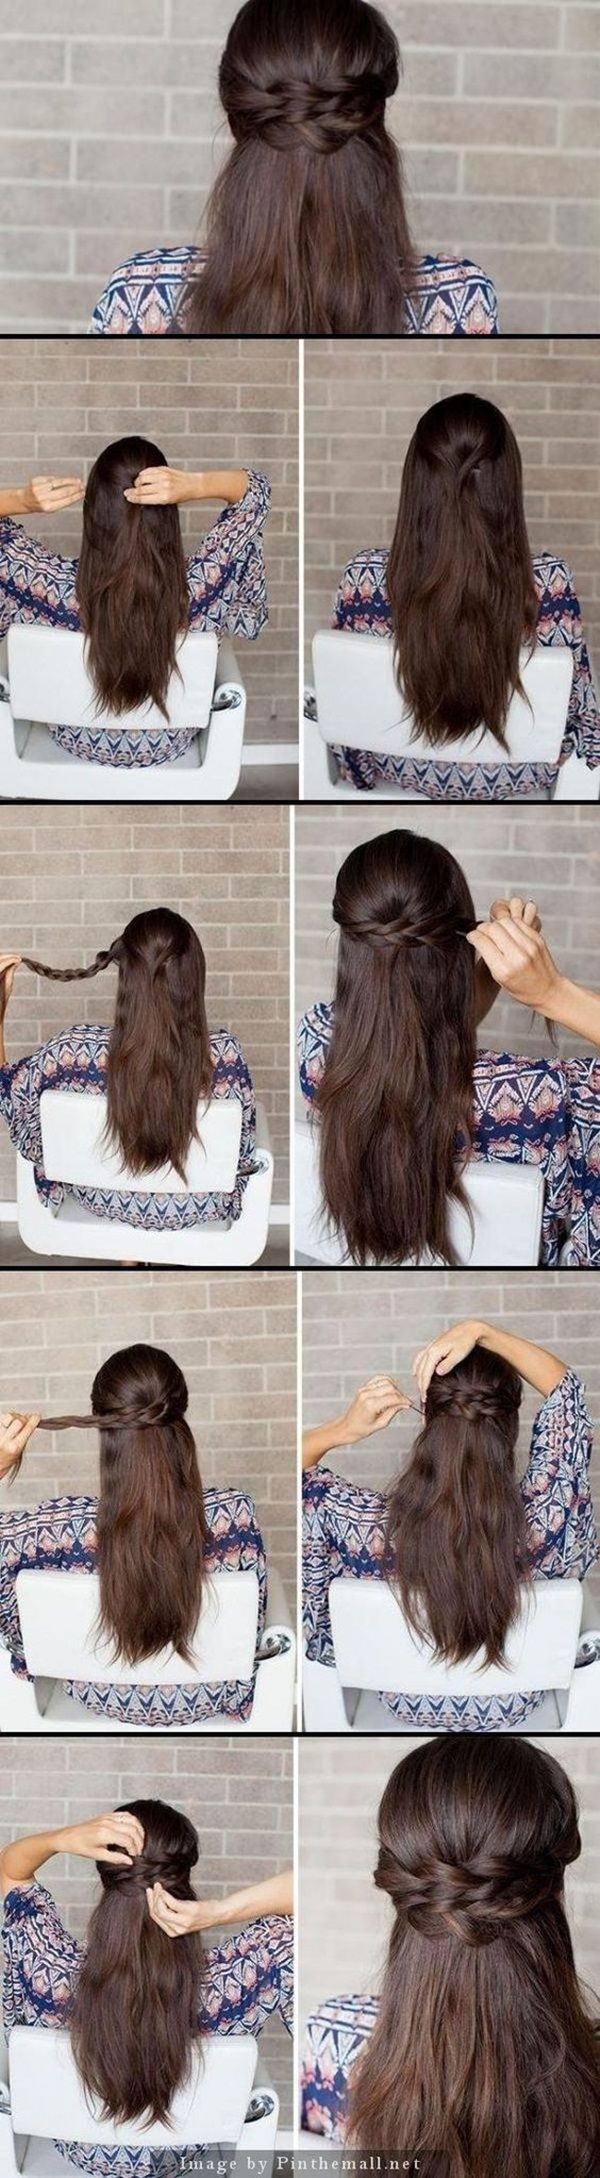 best cute hair style images on pinterest hairstyle ideas